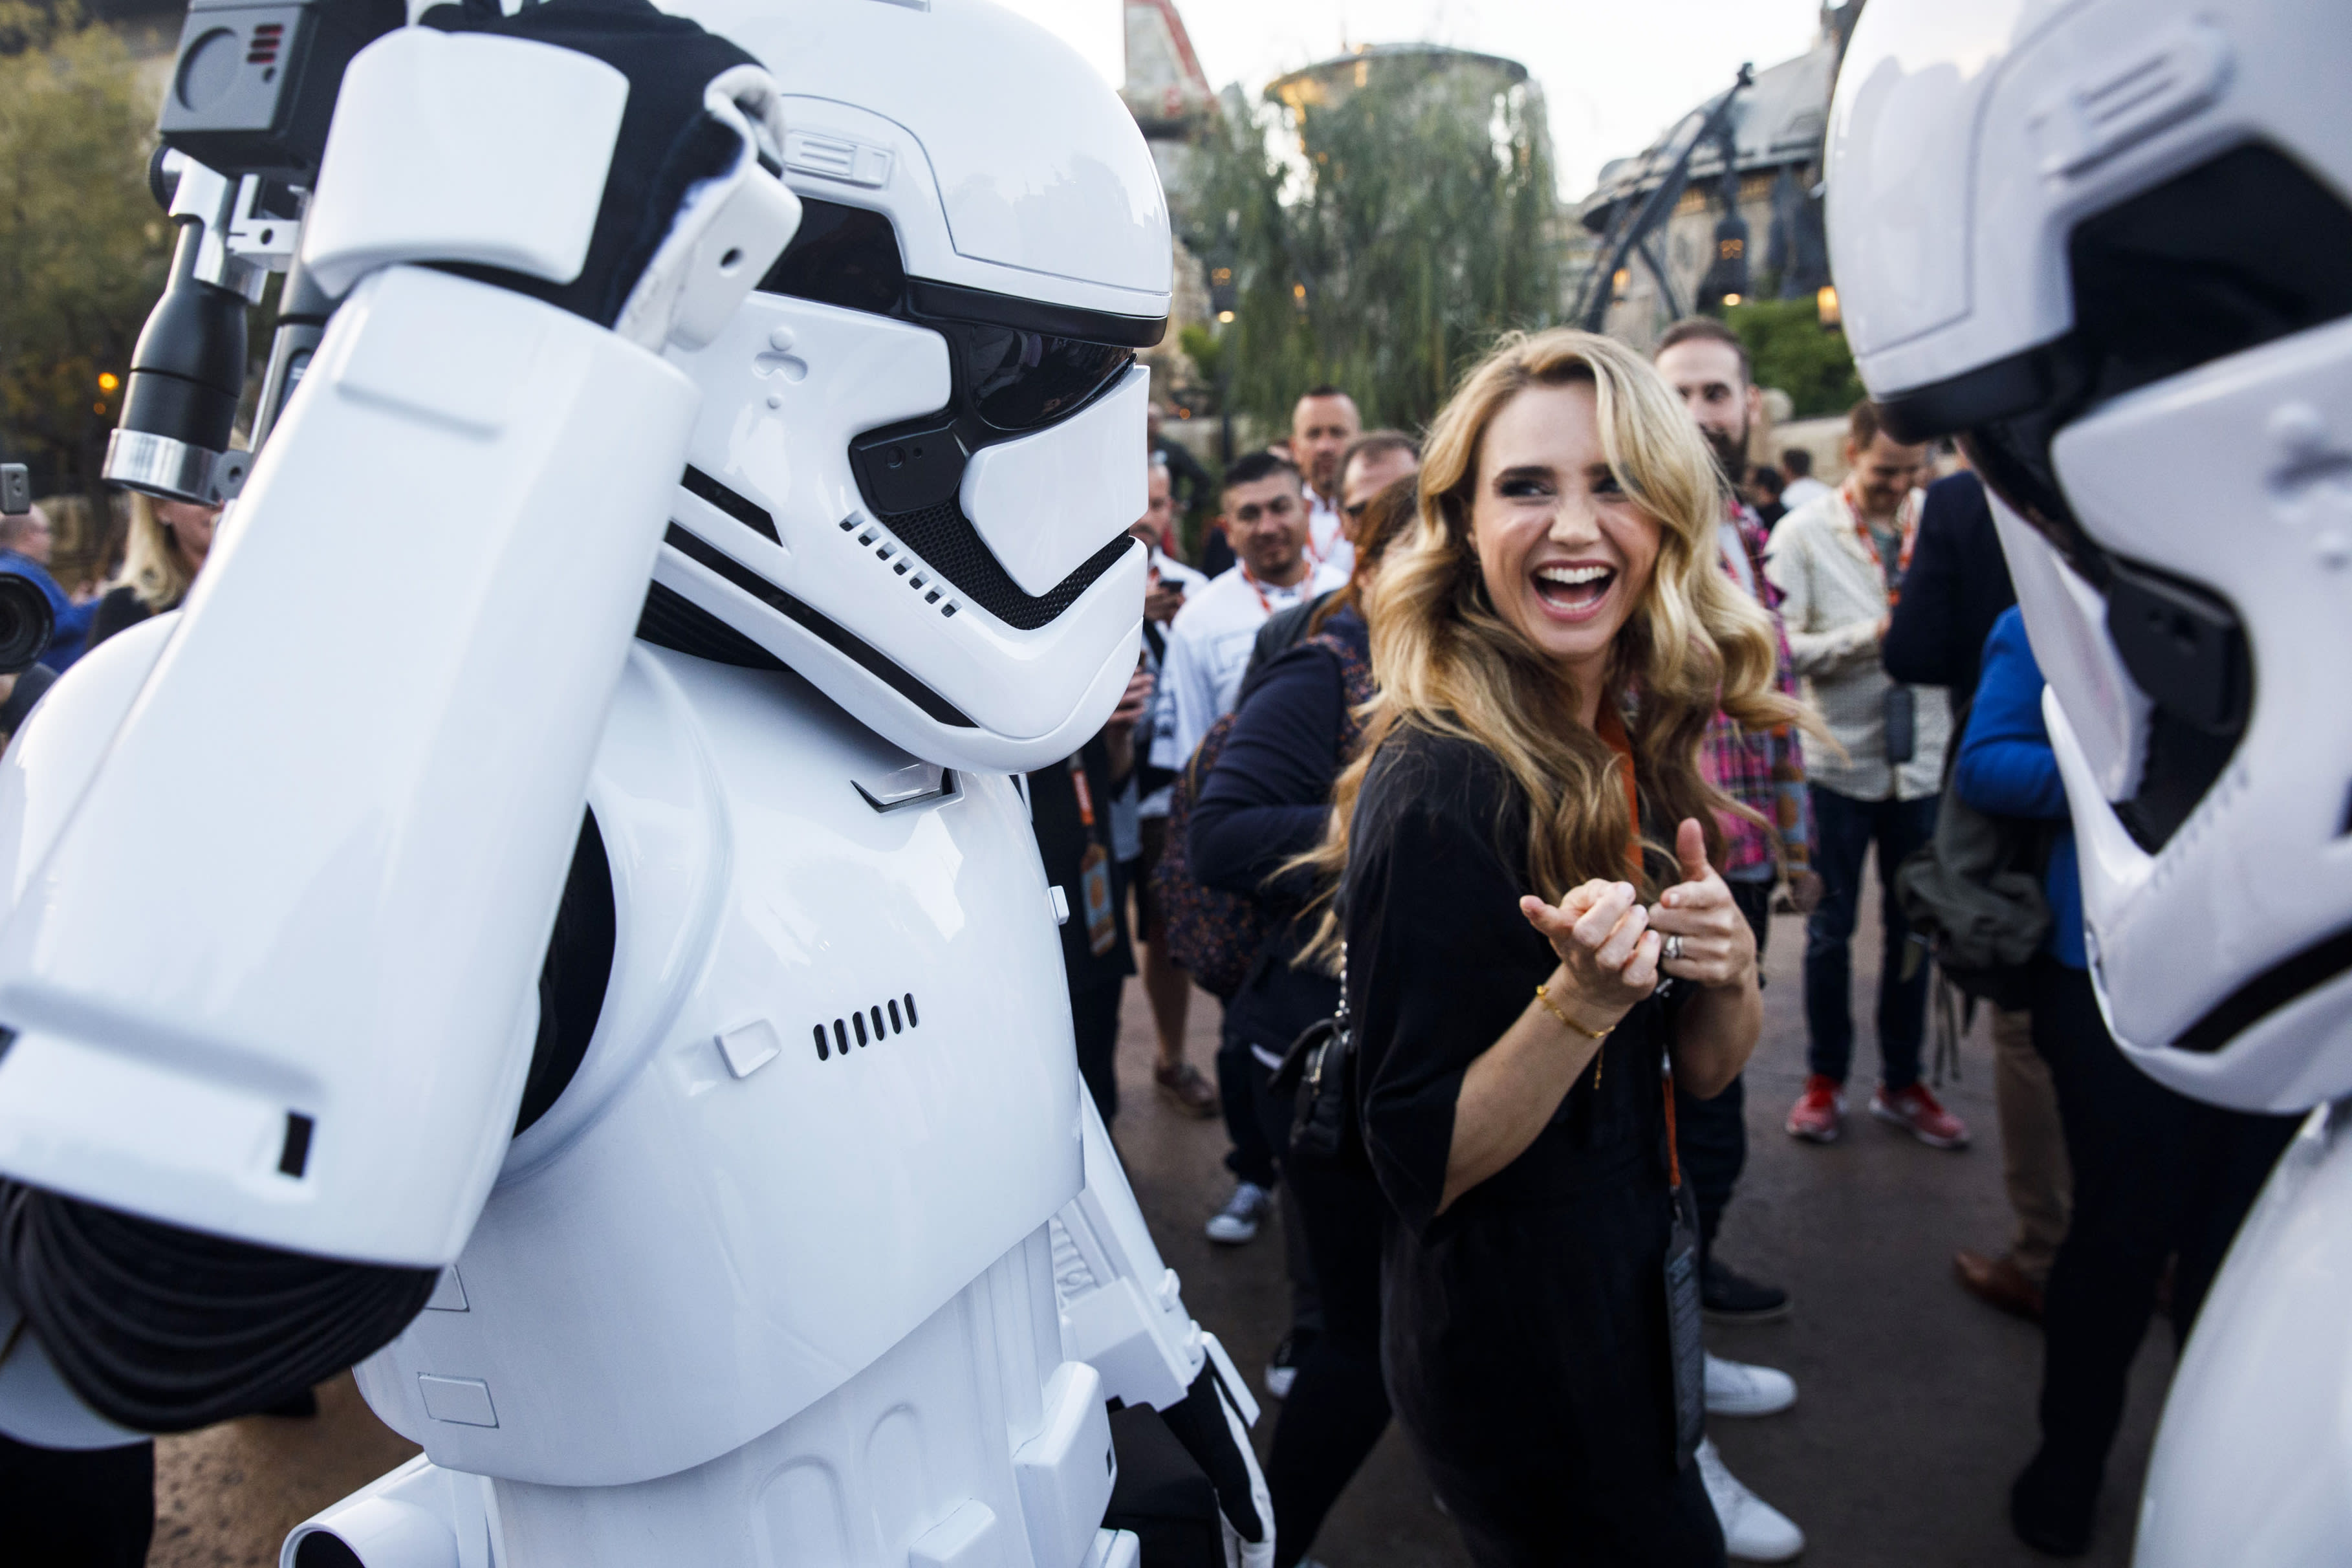 Disney says lower foot traffic at Galaxy's Edge's was intentional